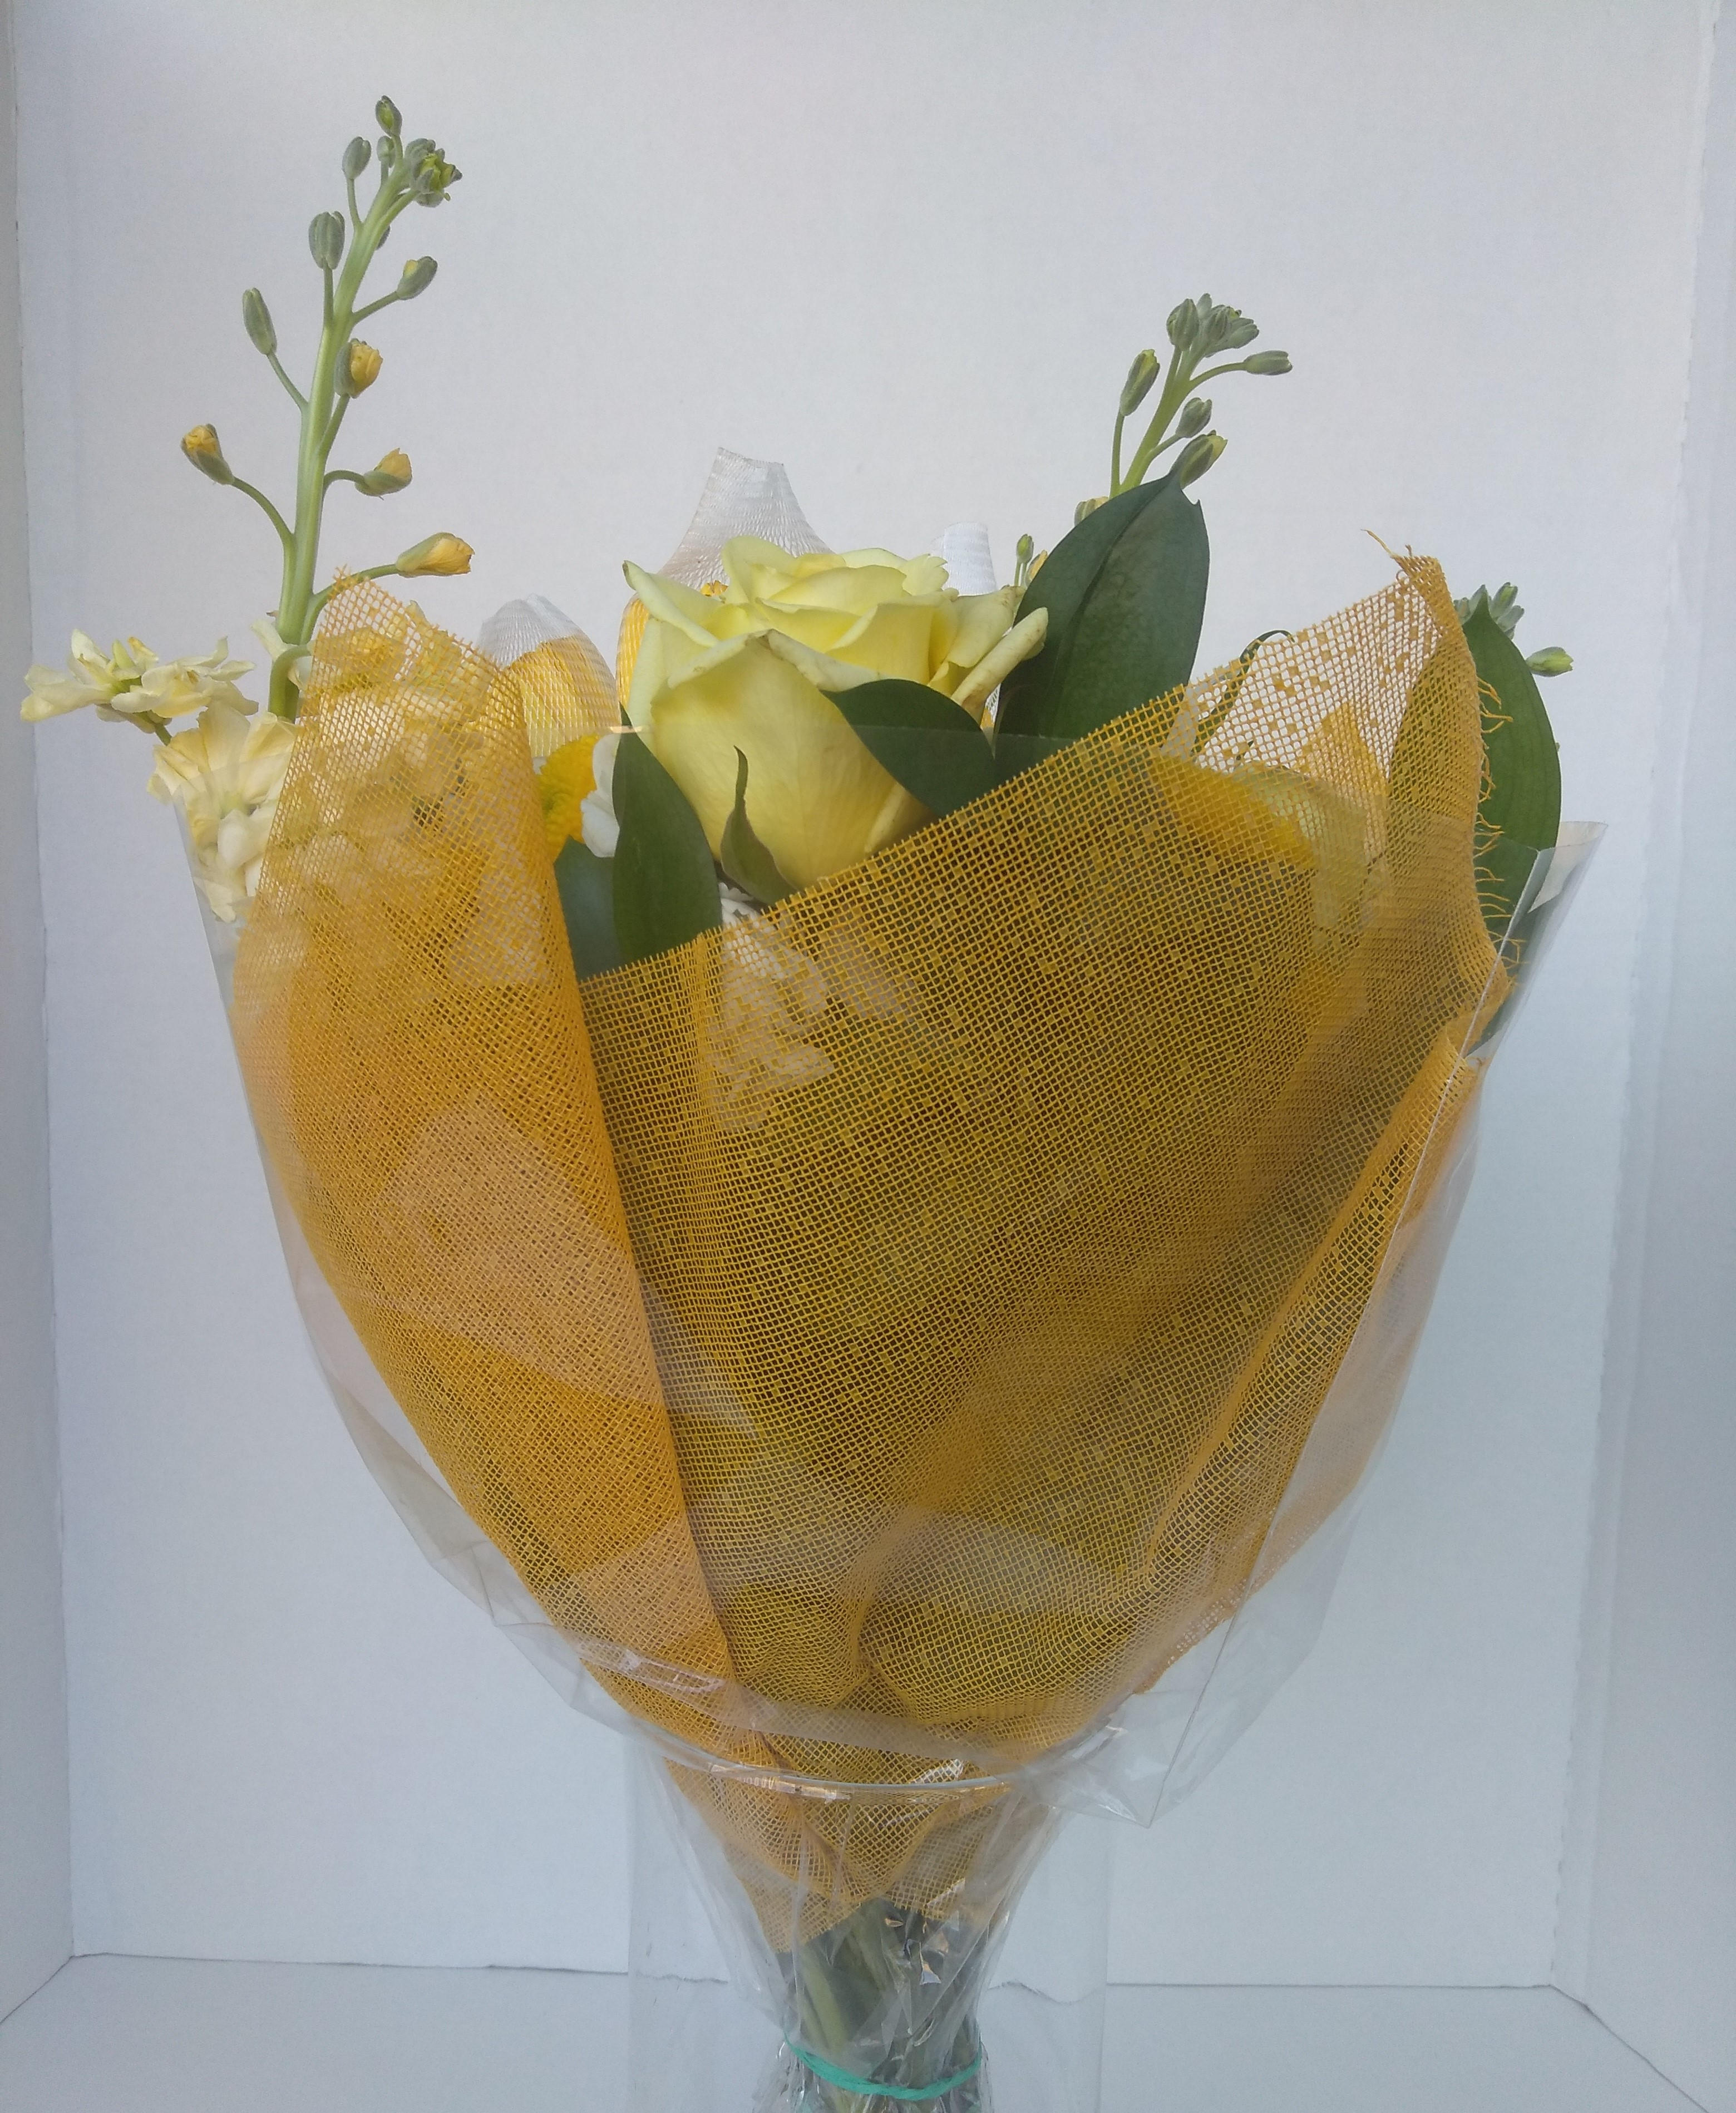 DM1 │ color: yellow fall │ size: 20